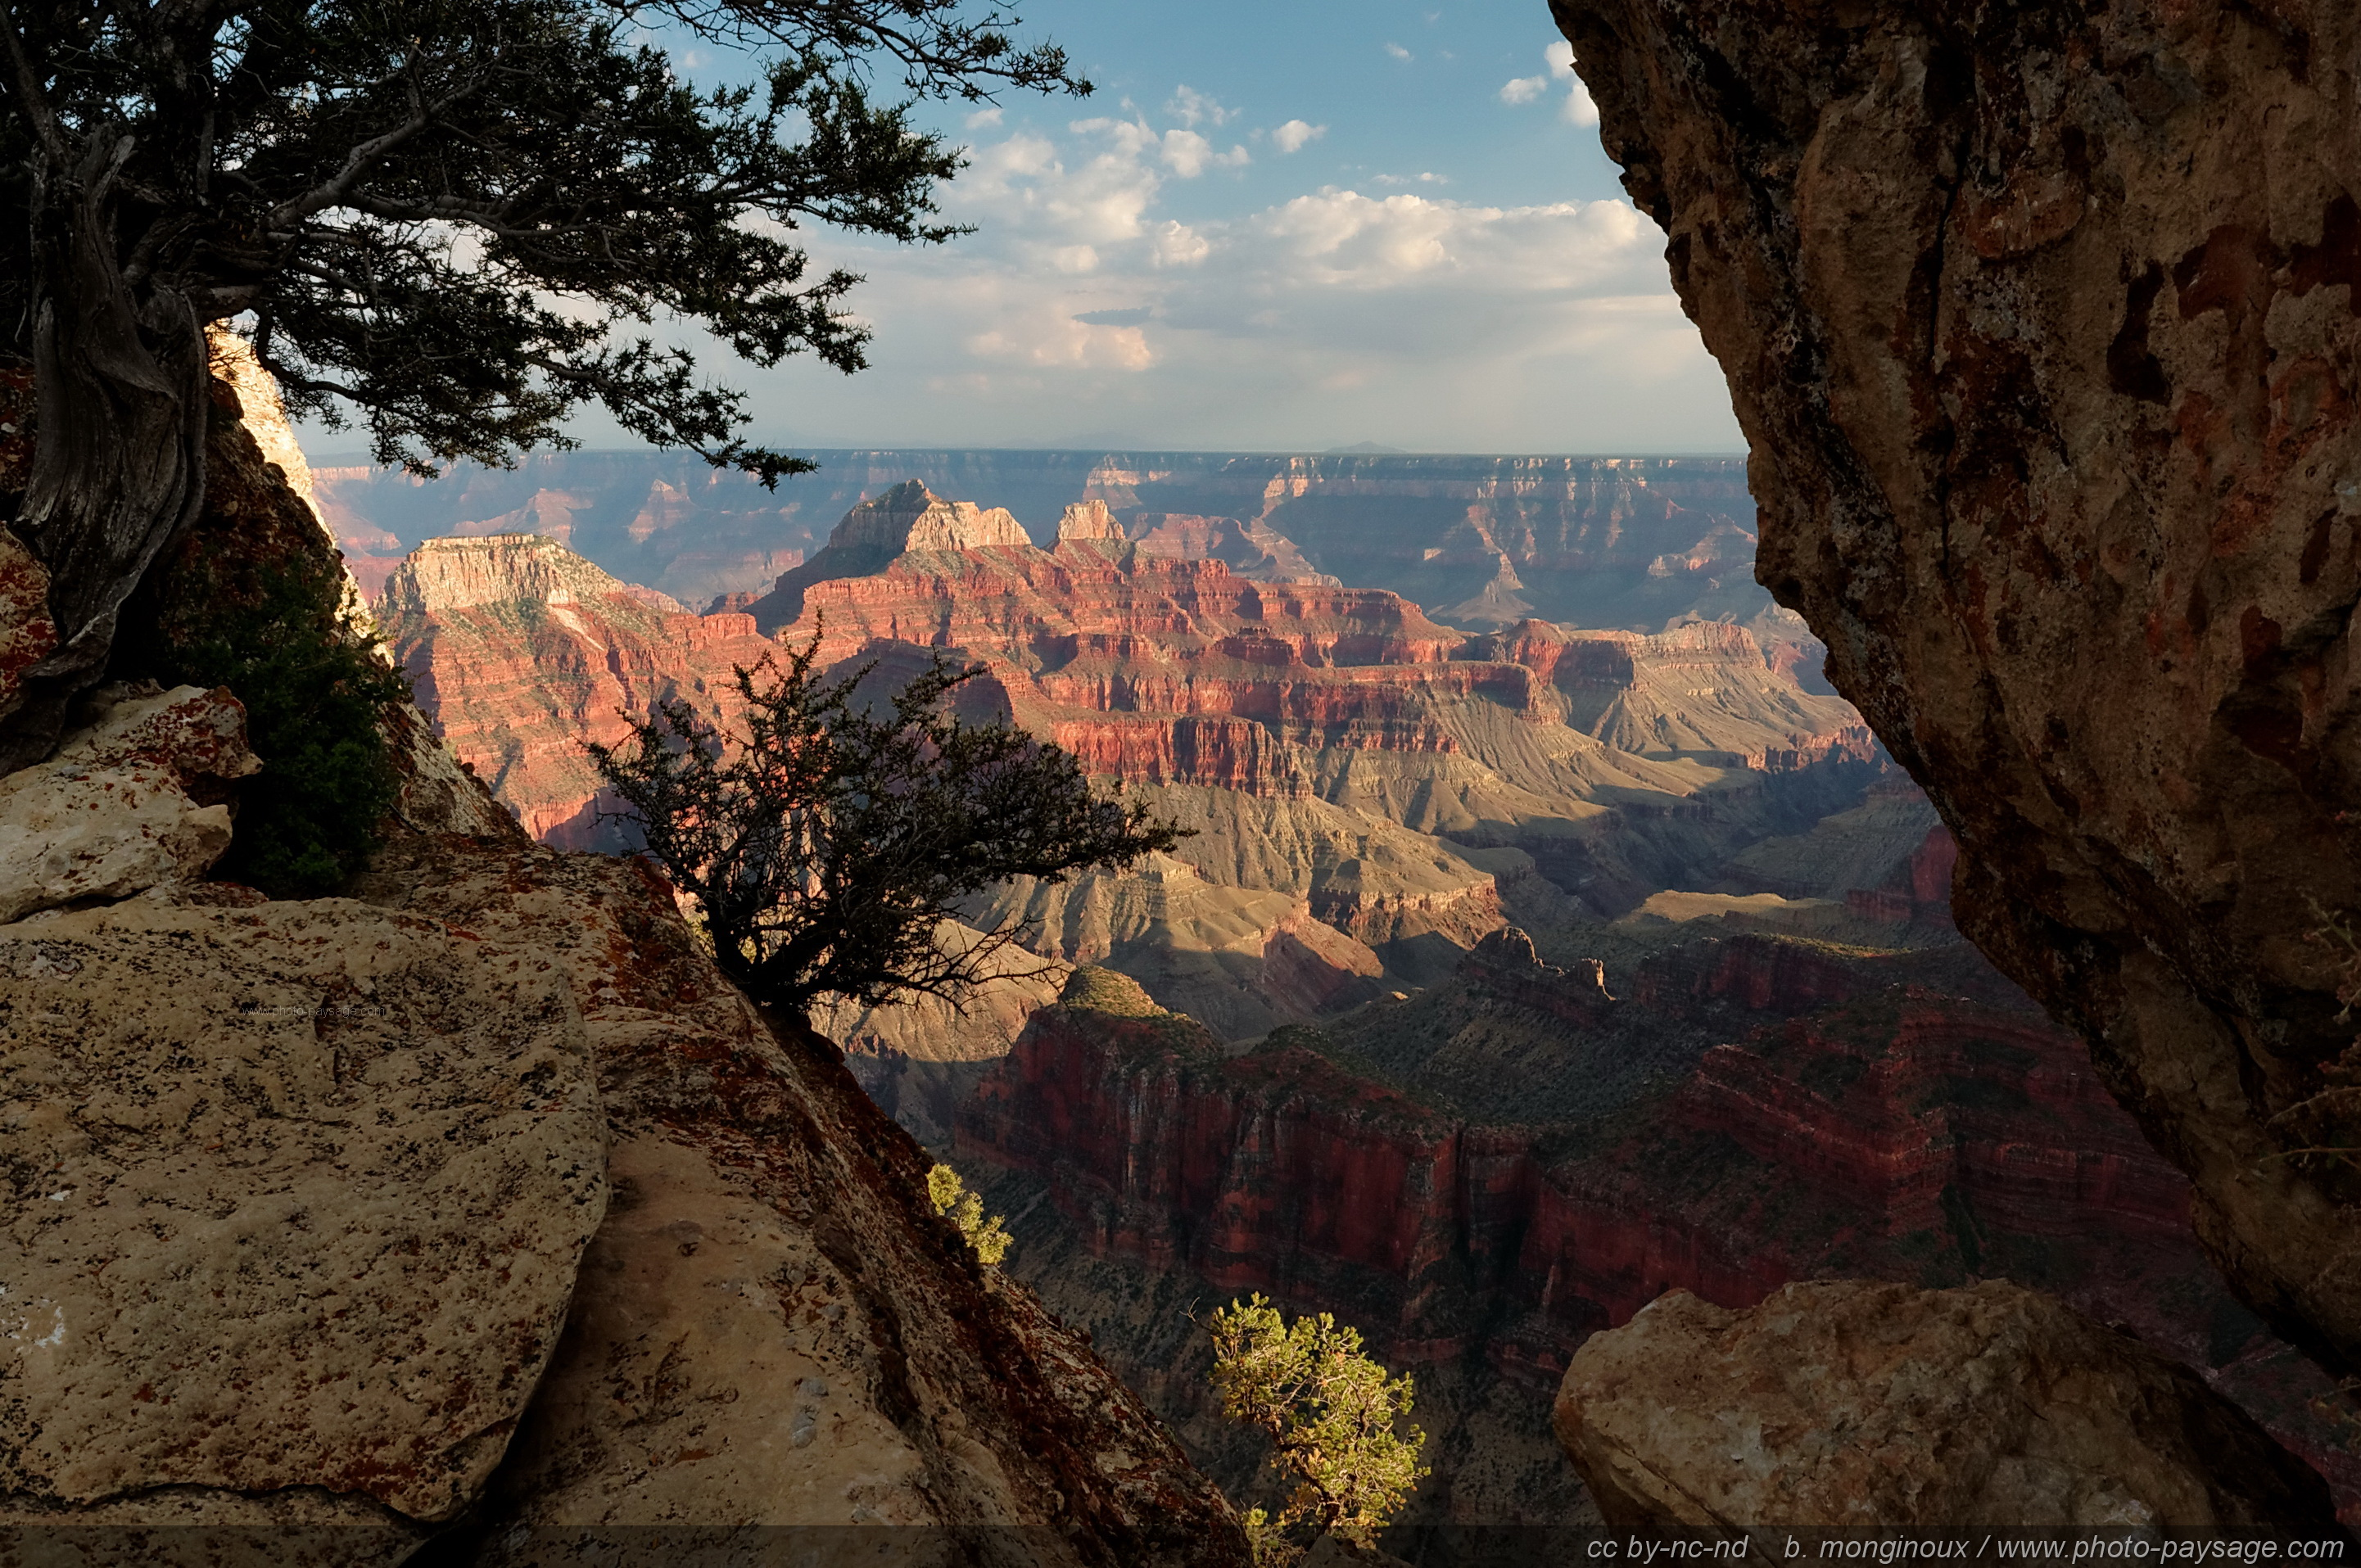 Vue plongeante sur le Grand Canyon (North Rim), Arizona, USA.